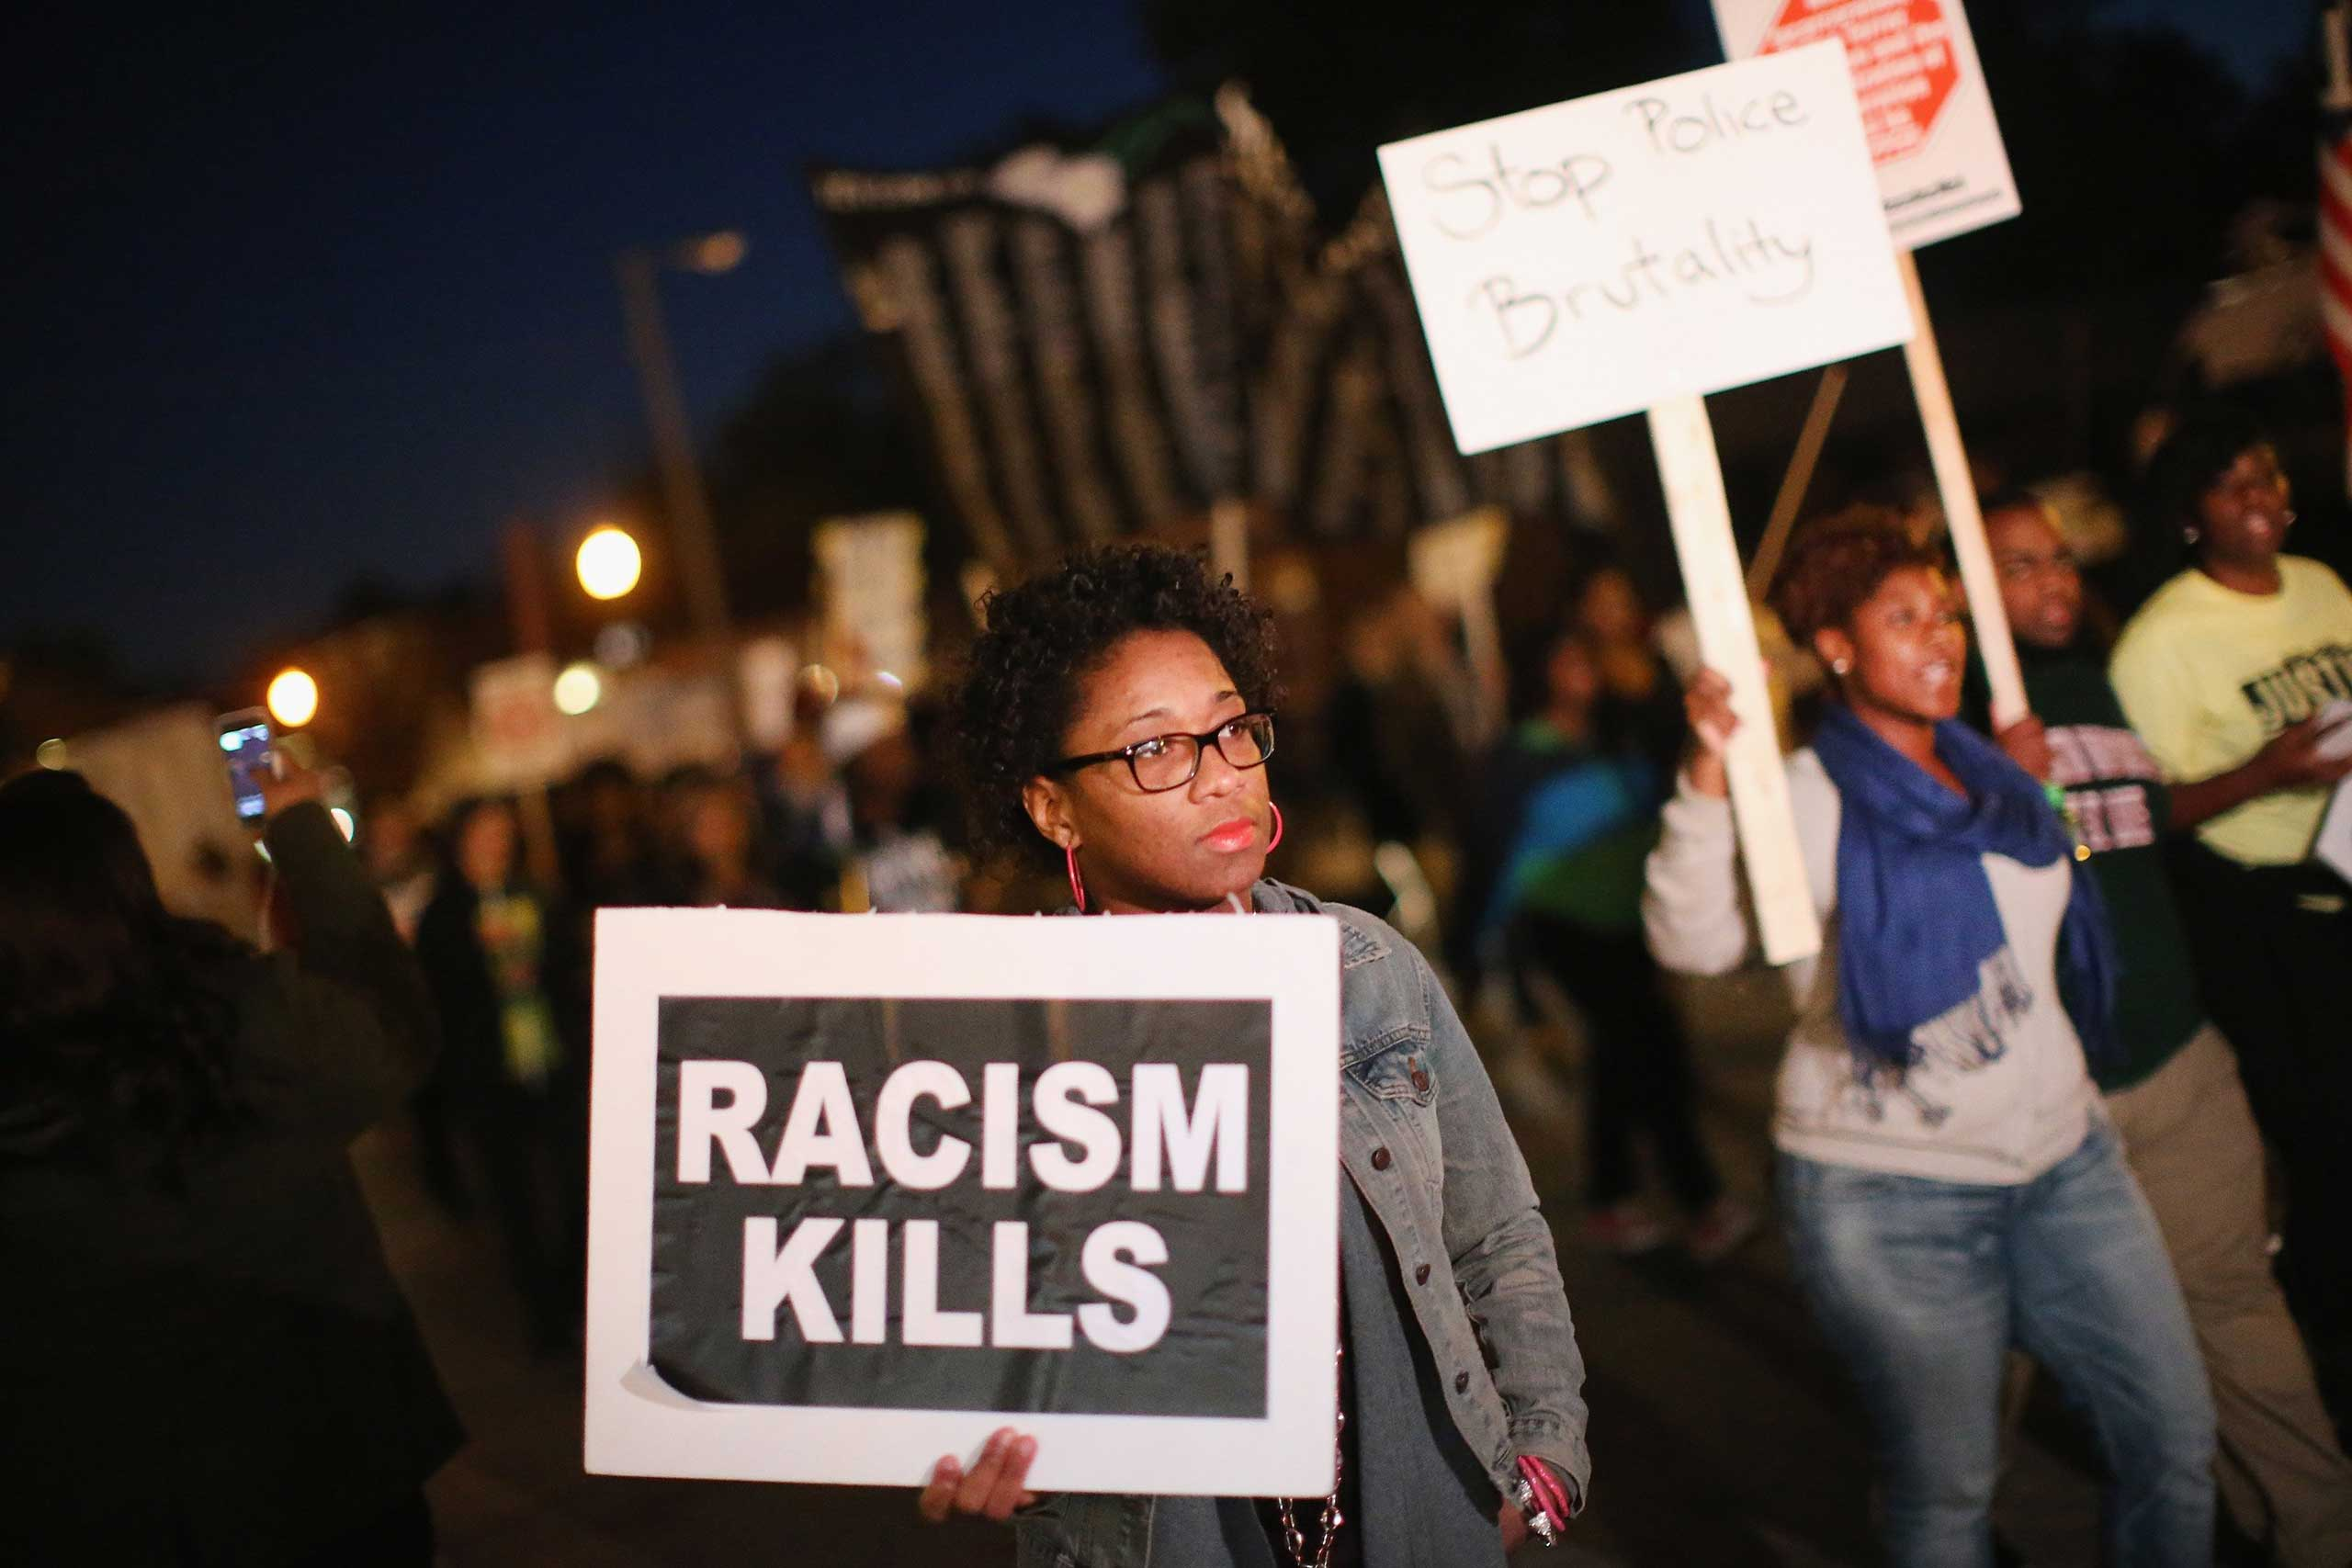 Demonstrators march toward the police station as protests continue in the wake of 18-year-old Michael Brown's death on Oct. 22, 2014 in Ferguson, Mo.